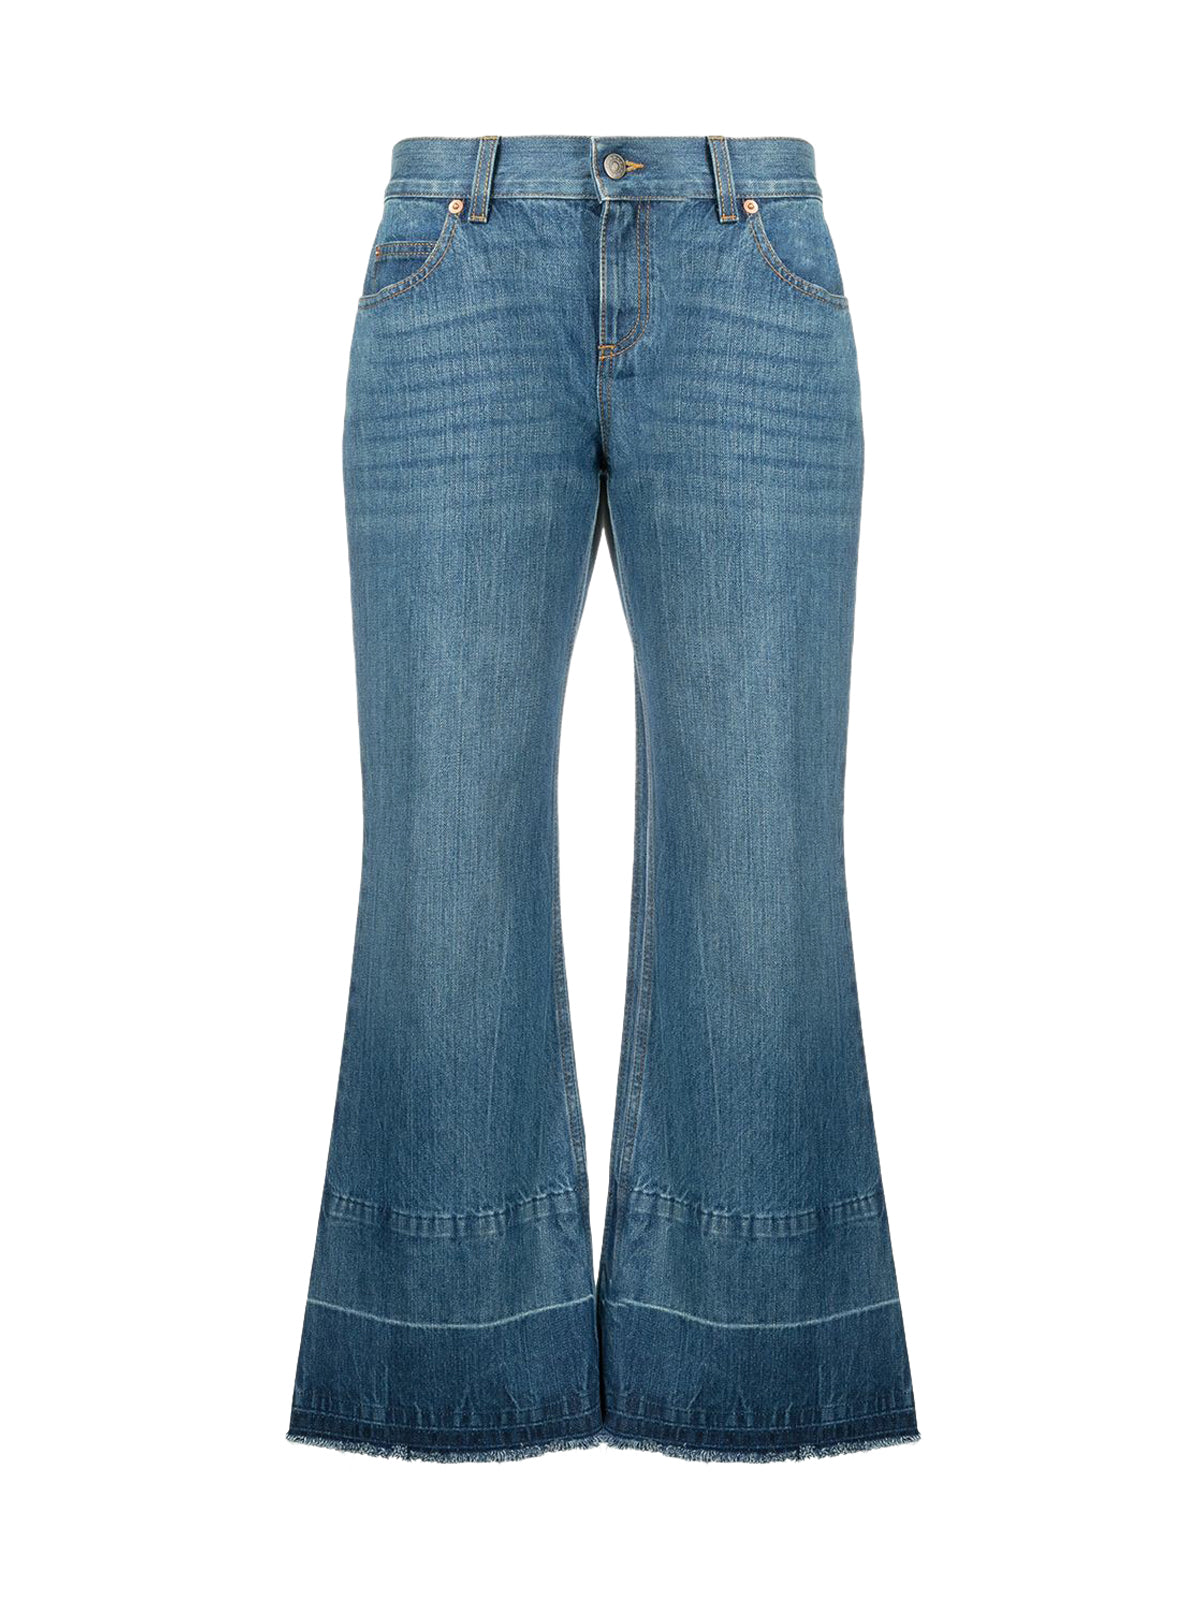 x Disney cropped bell bottom jeans